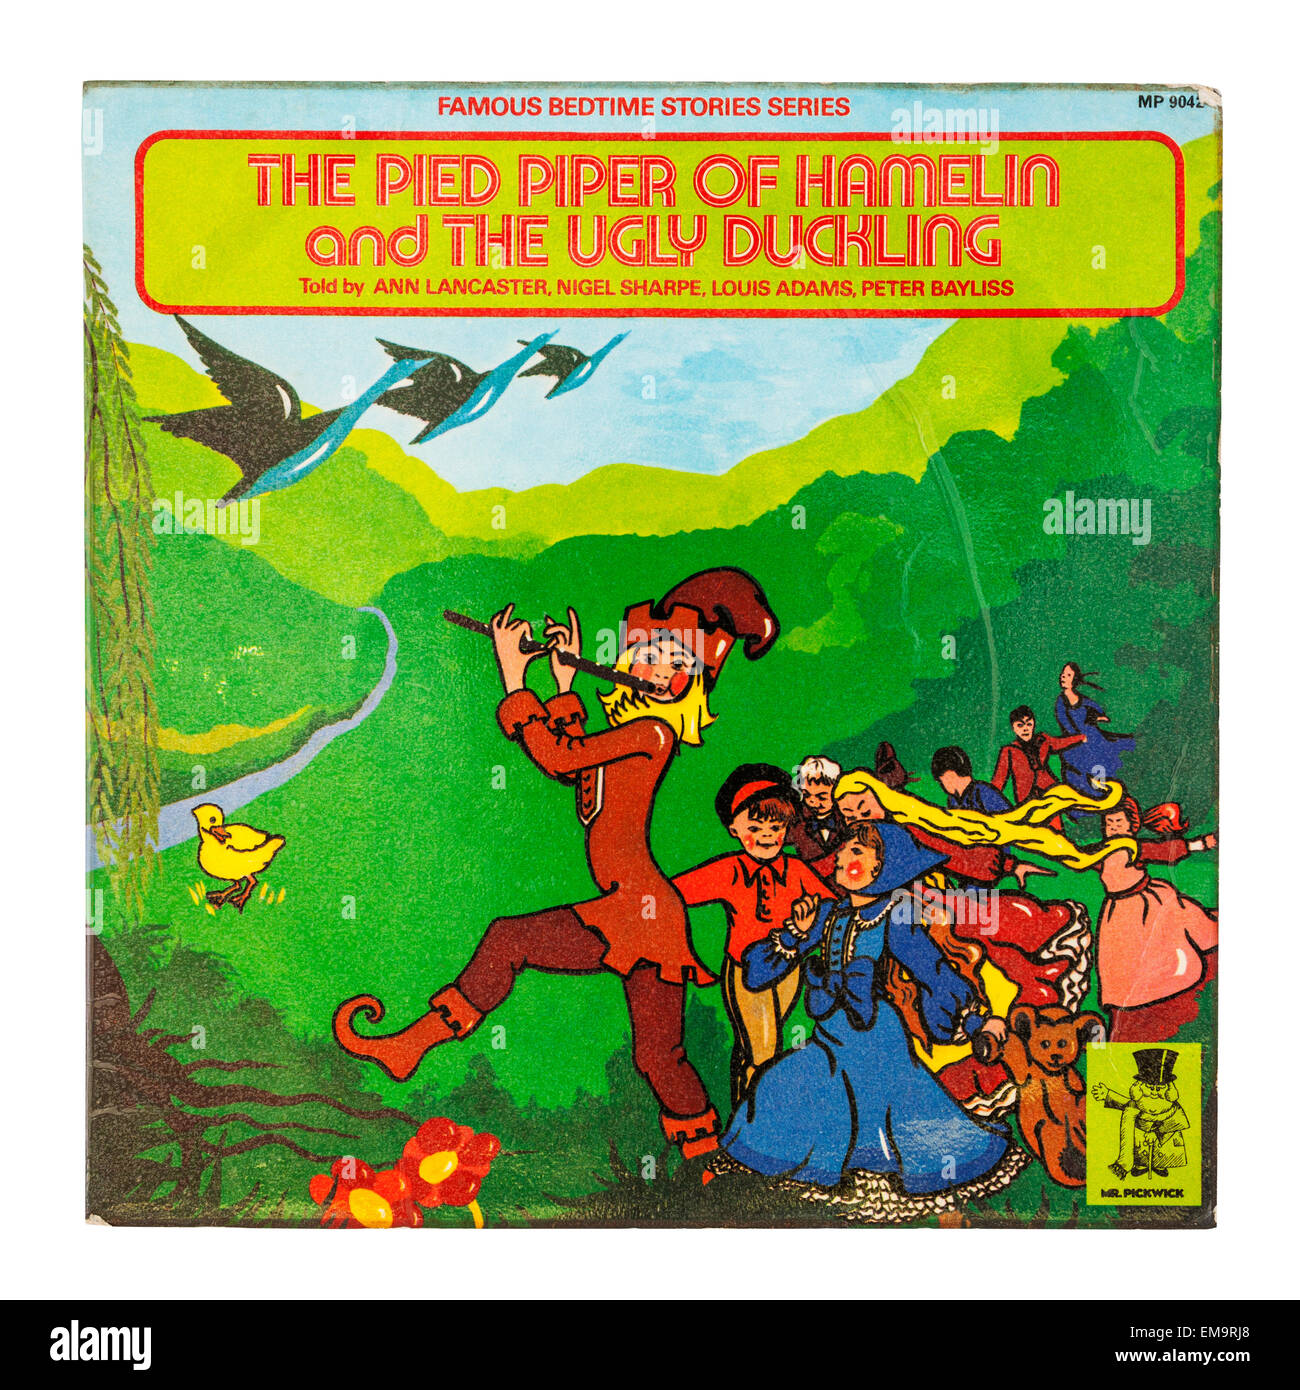 A Childrens Vinyl record called The Pied Piper of Hamelin on a white background - Stock Image